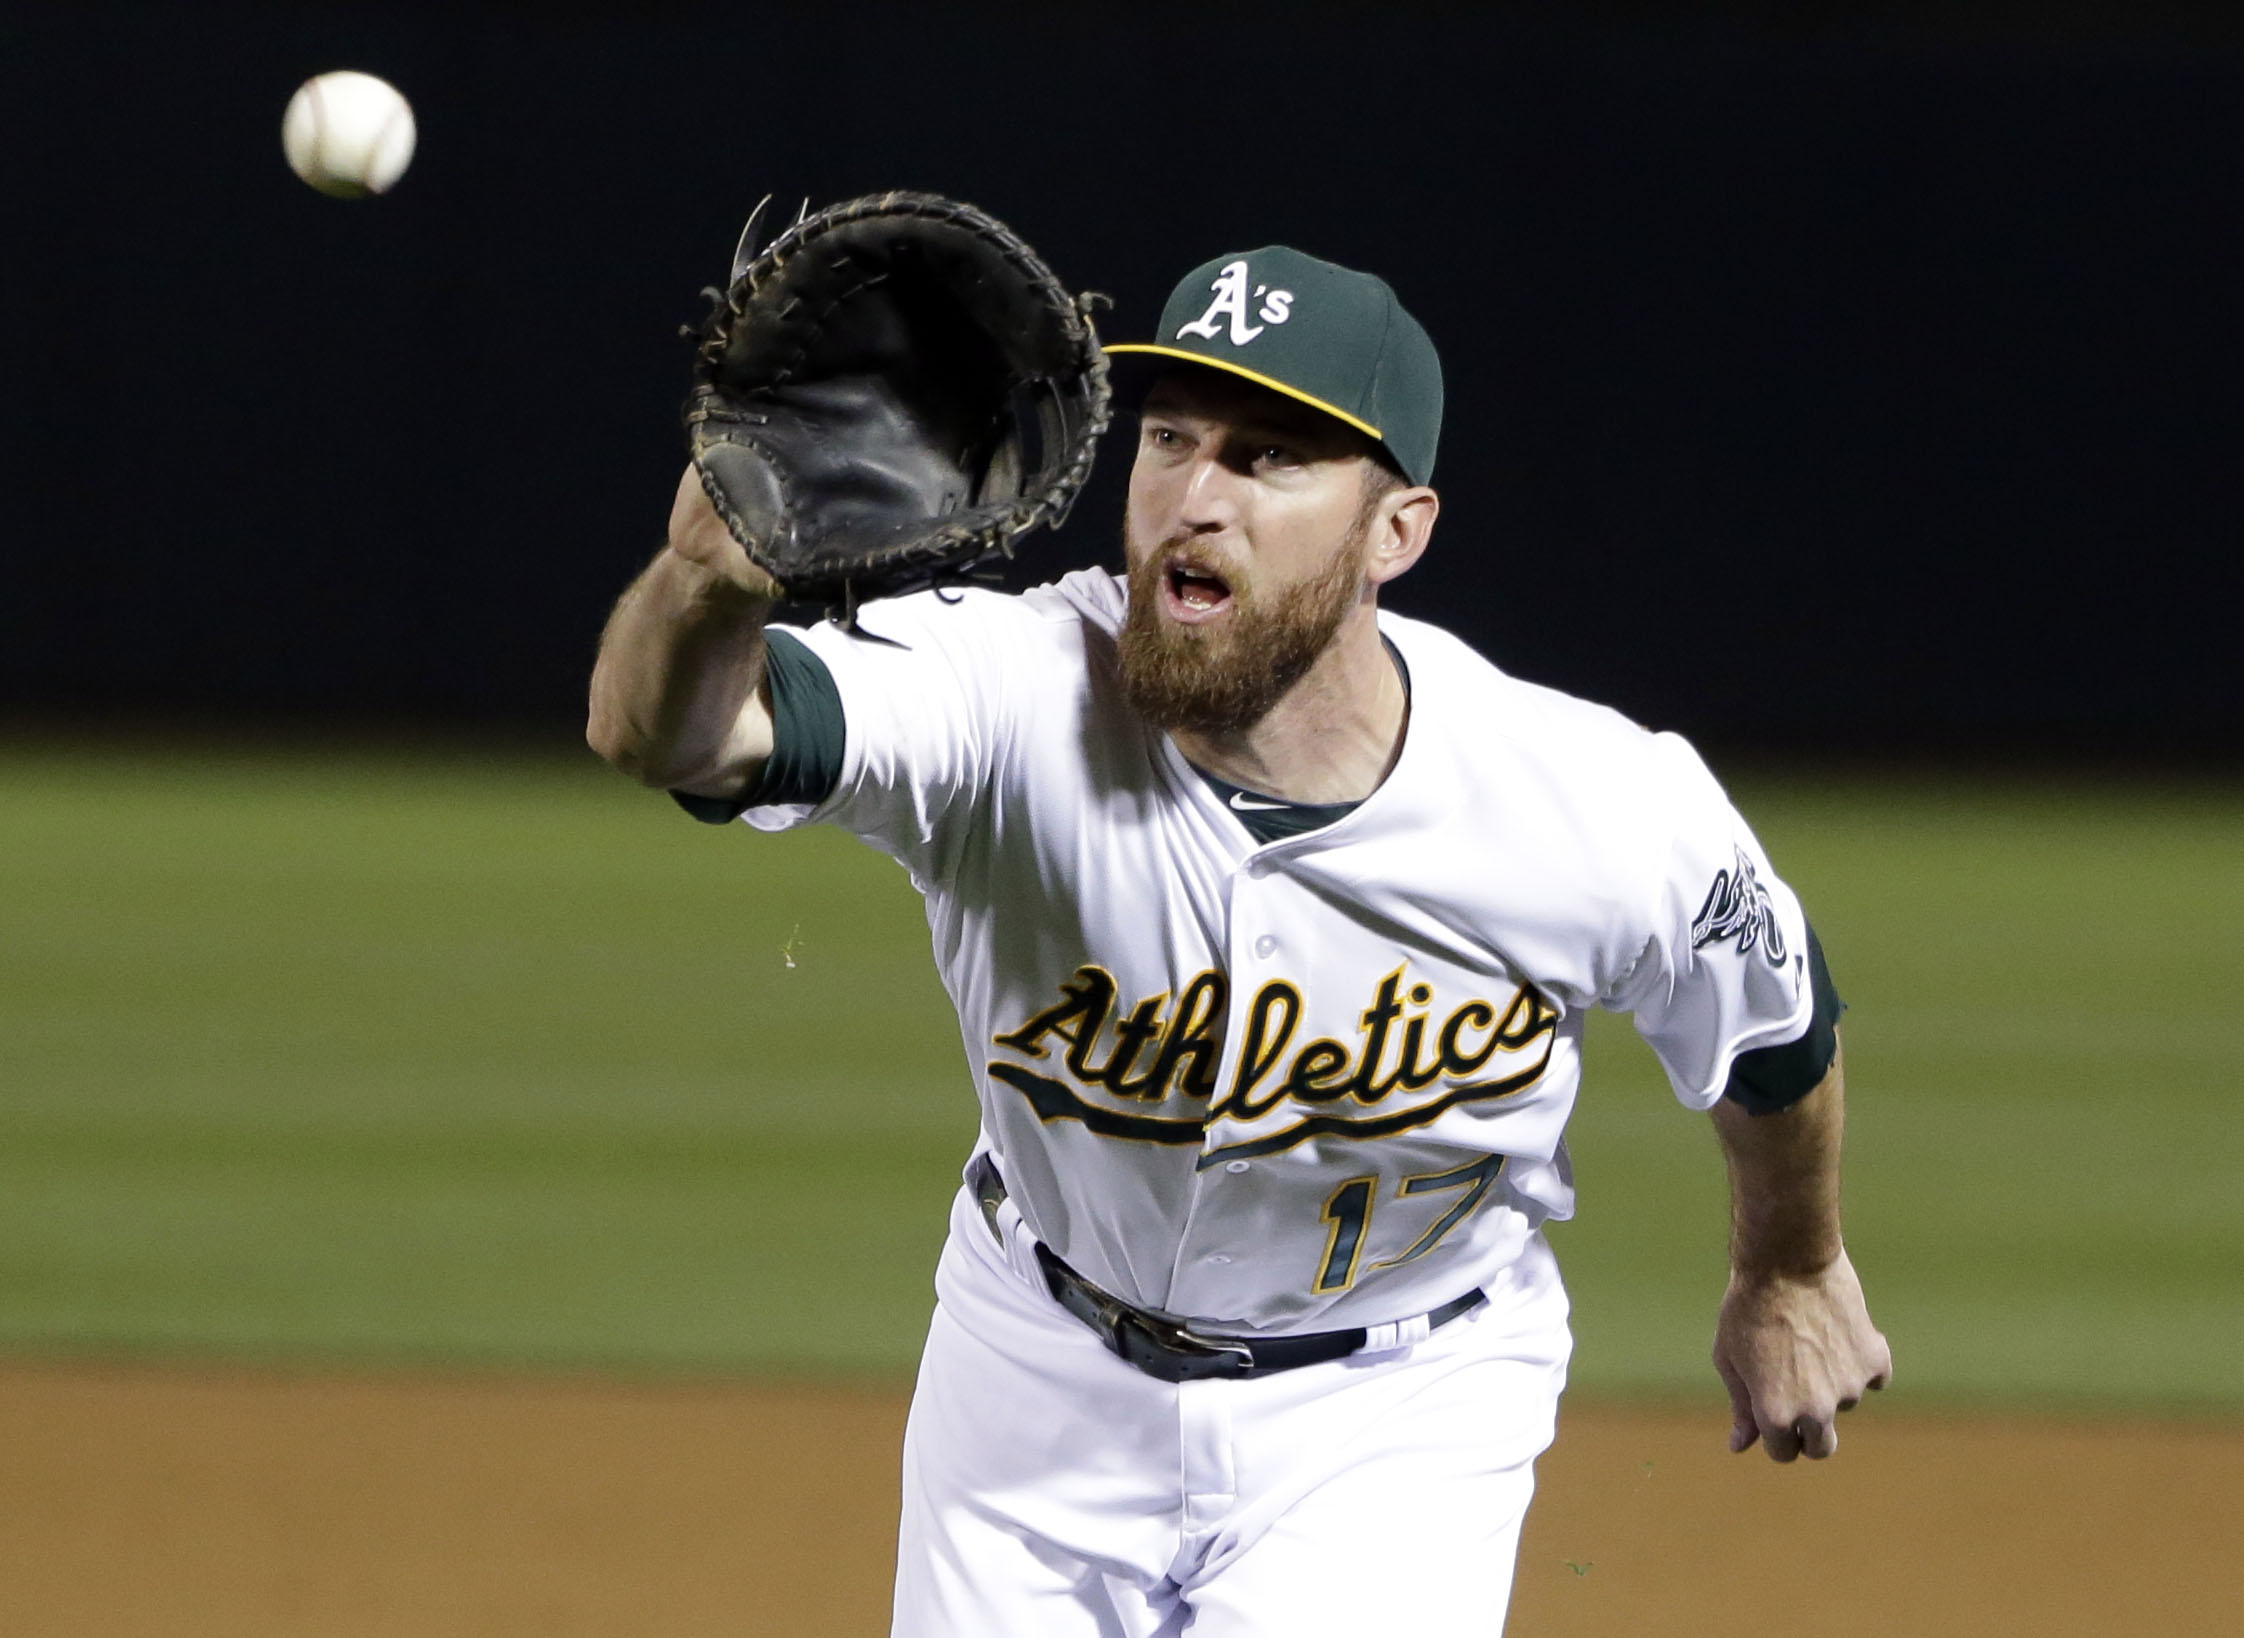 Oakland Athletics first baseman Ike Davis (17) makes a catch on a bunt attempt from Los Angeles Angels' Grant Green during the seventh inning of a baseball game Wednesday, April 29, 2015, in Oakland, Calif. (AP Photo/Marcio Jose Sanchez)